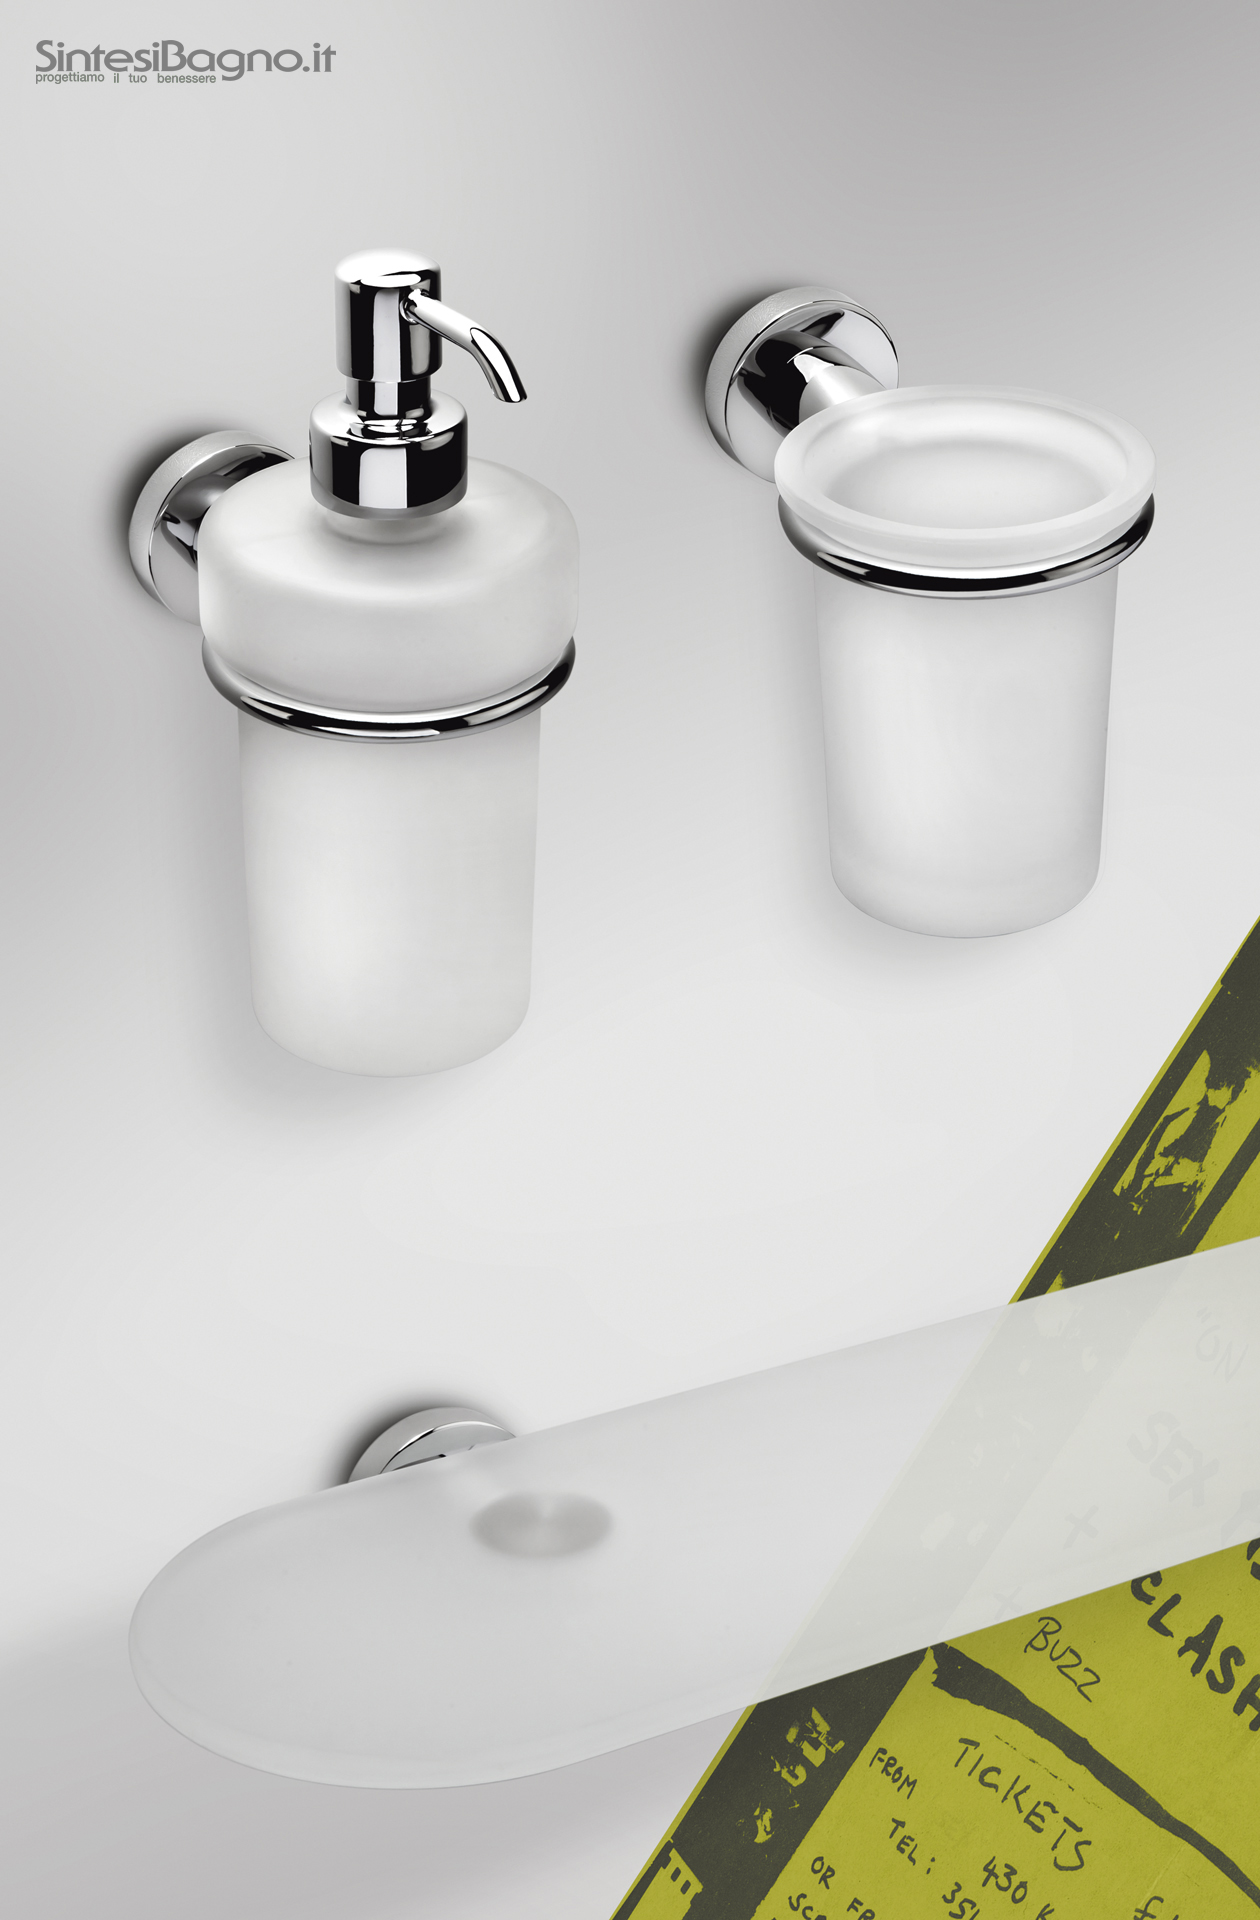 Gli accessori bagno a prezzo accessibile serie basic di for Accessori bagno di design